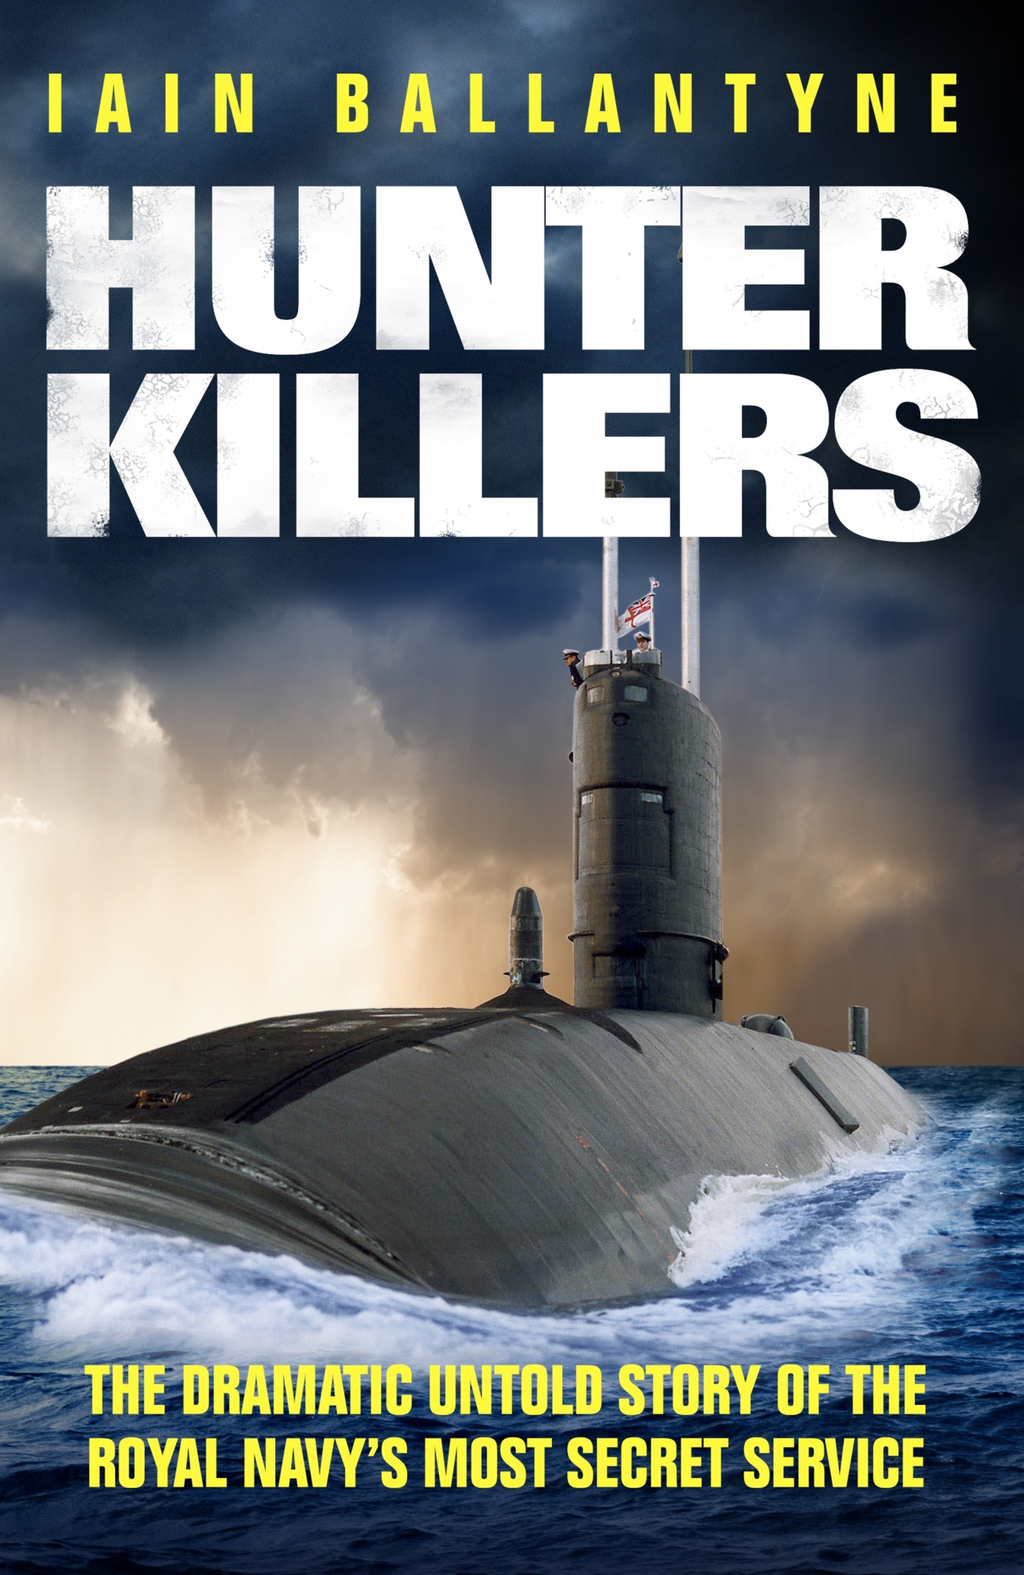 Hunter Killers The Dramatic Untold Story of the Royal Navy's Most Secret Service